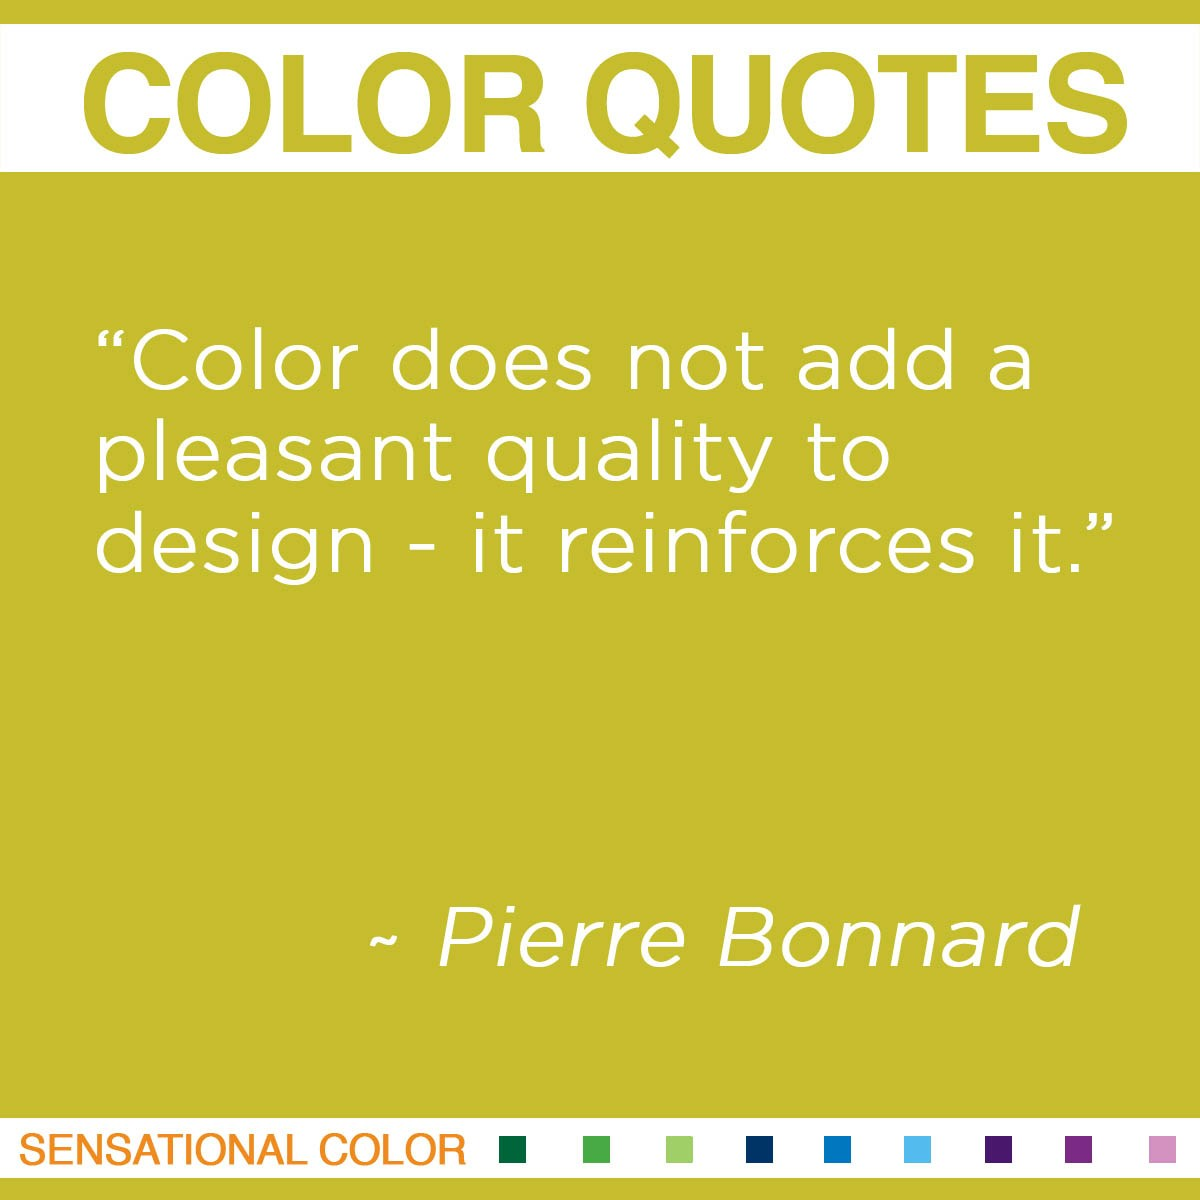 """Color does not add a pleasant quality to design – it reinforces it."" - Pierre Bonnard"